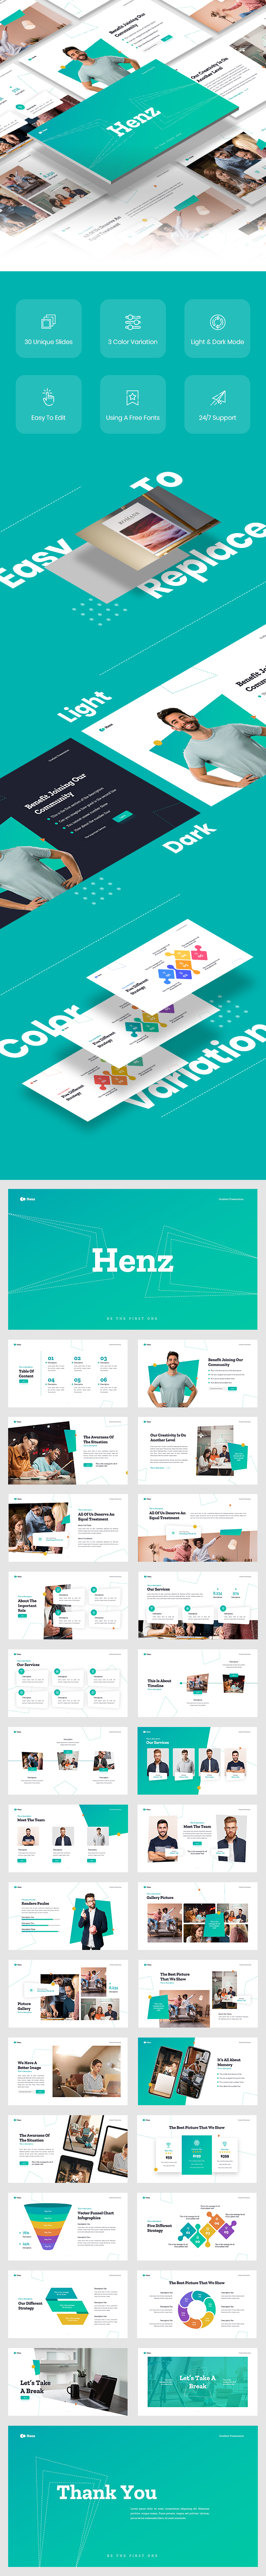 Henz Business Keynote Template